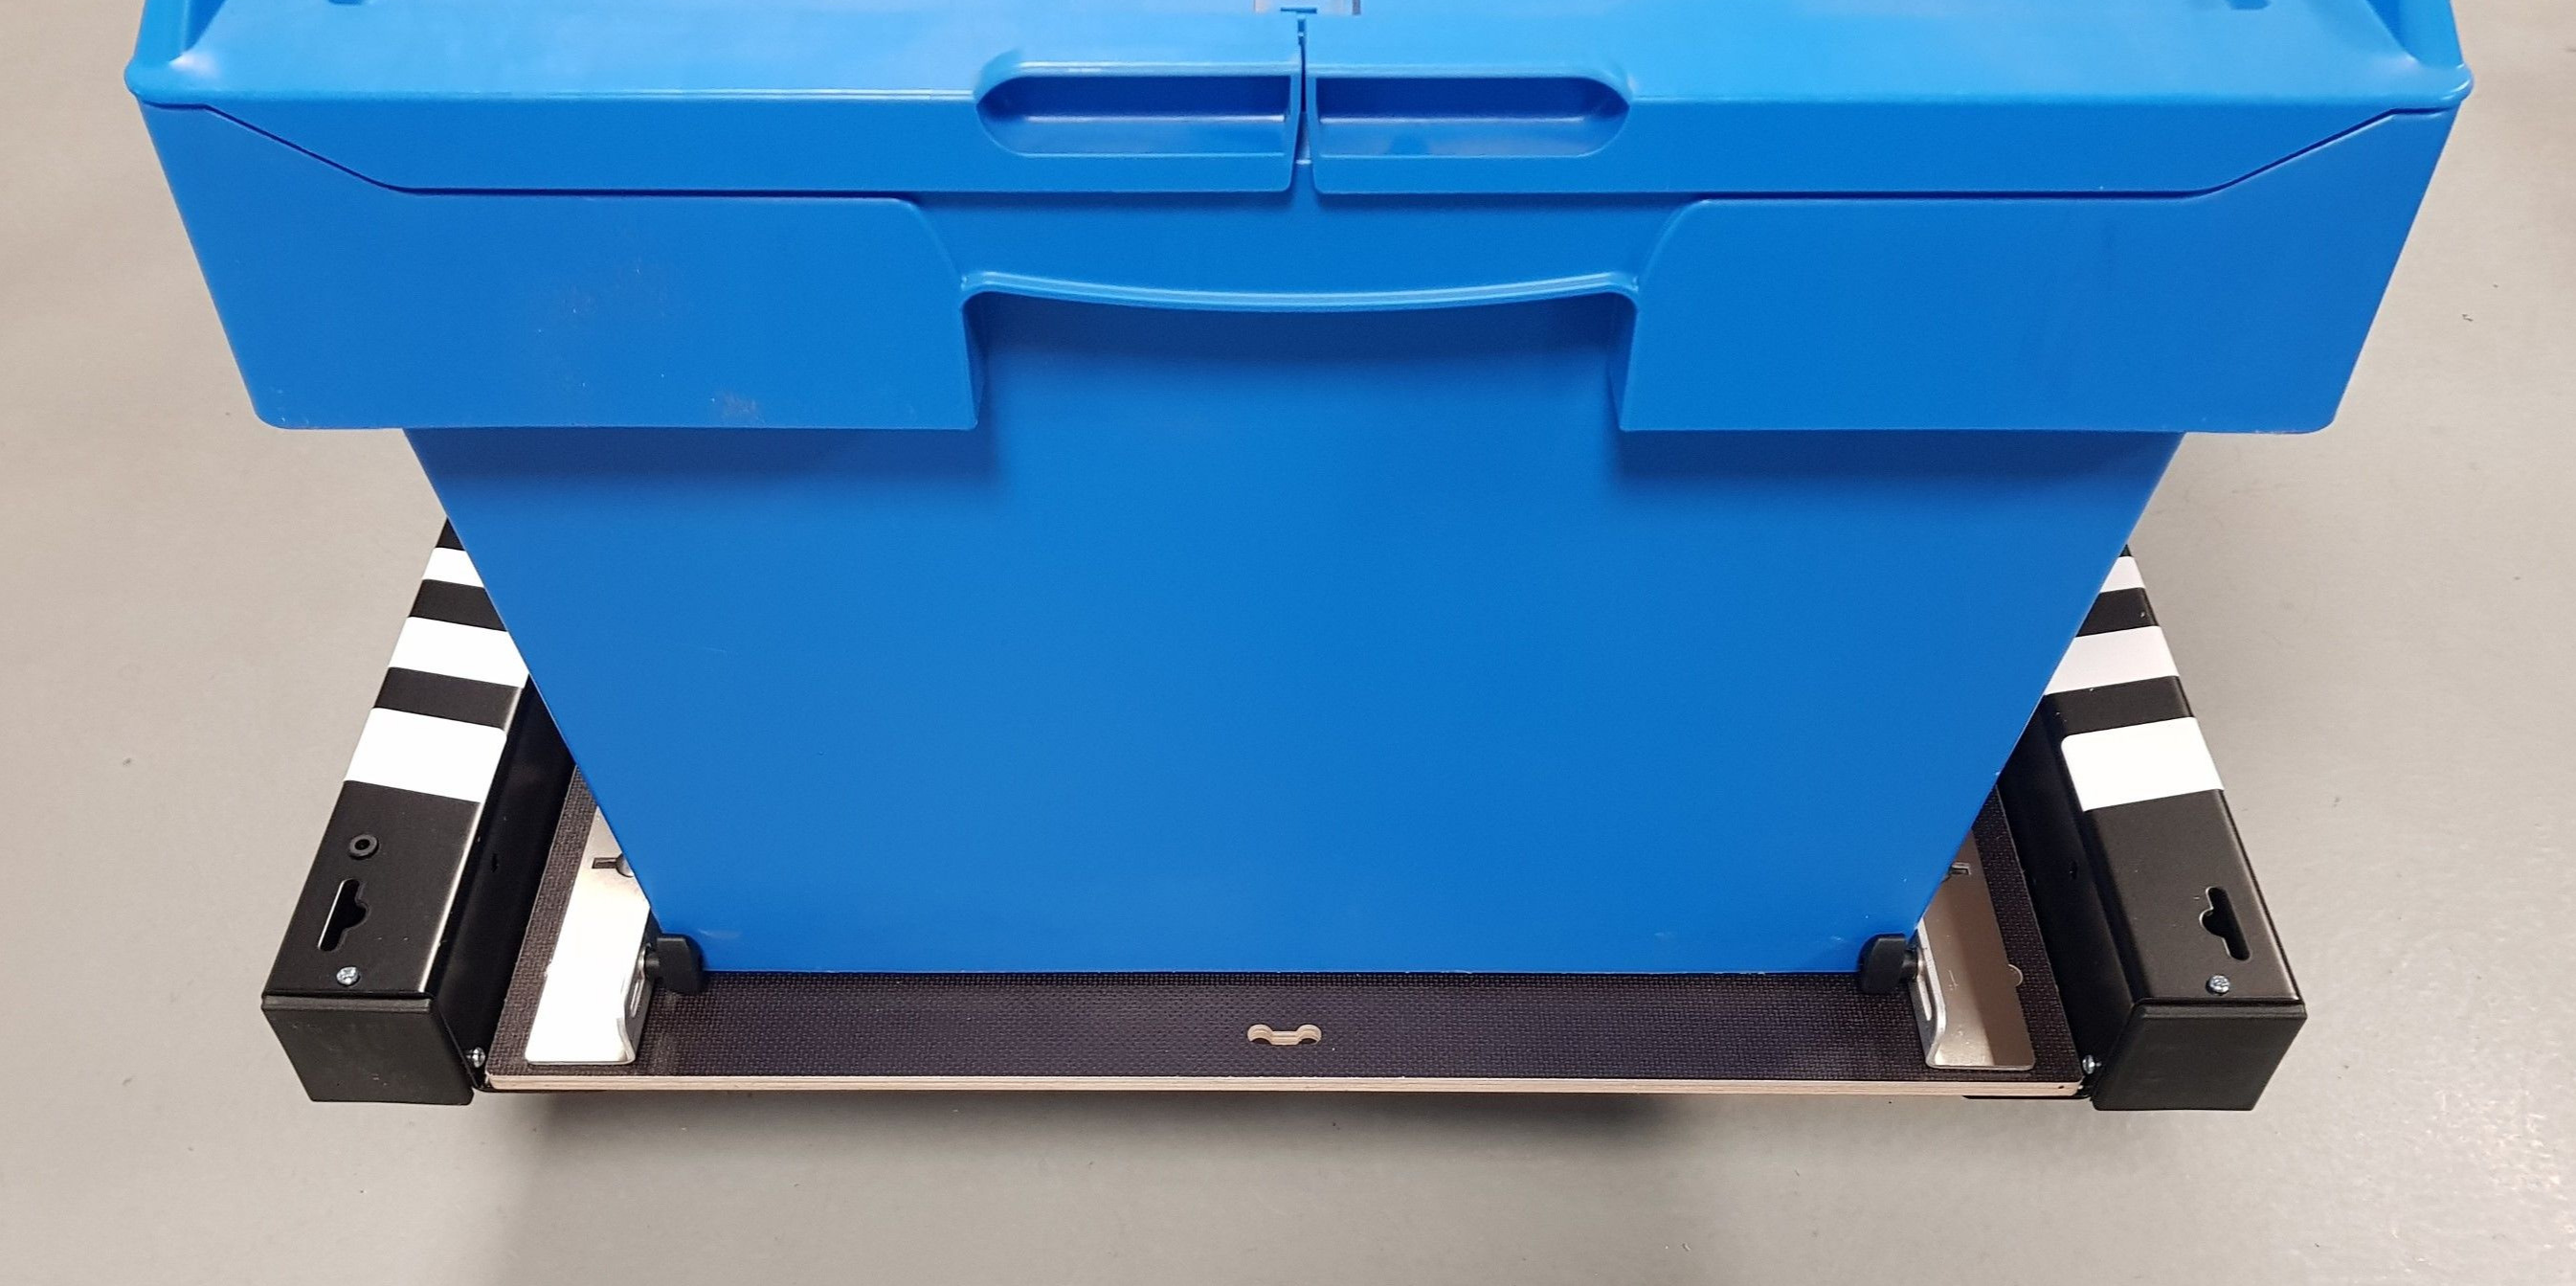 Blue box on a tray of a trailer with a black frame and three white stripes on each side